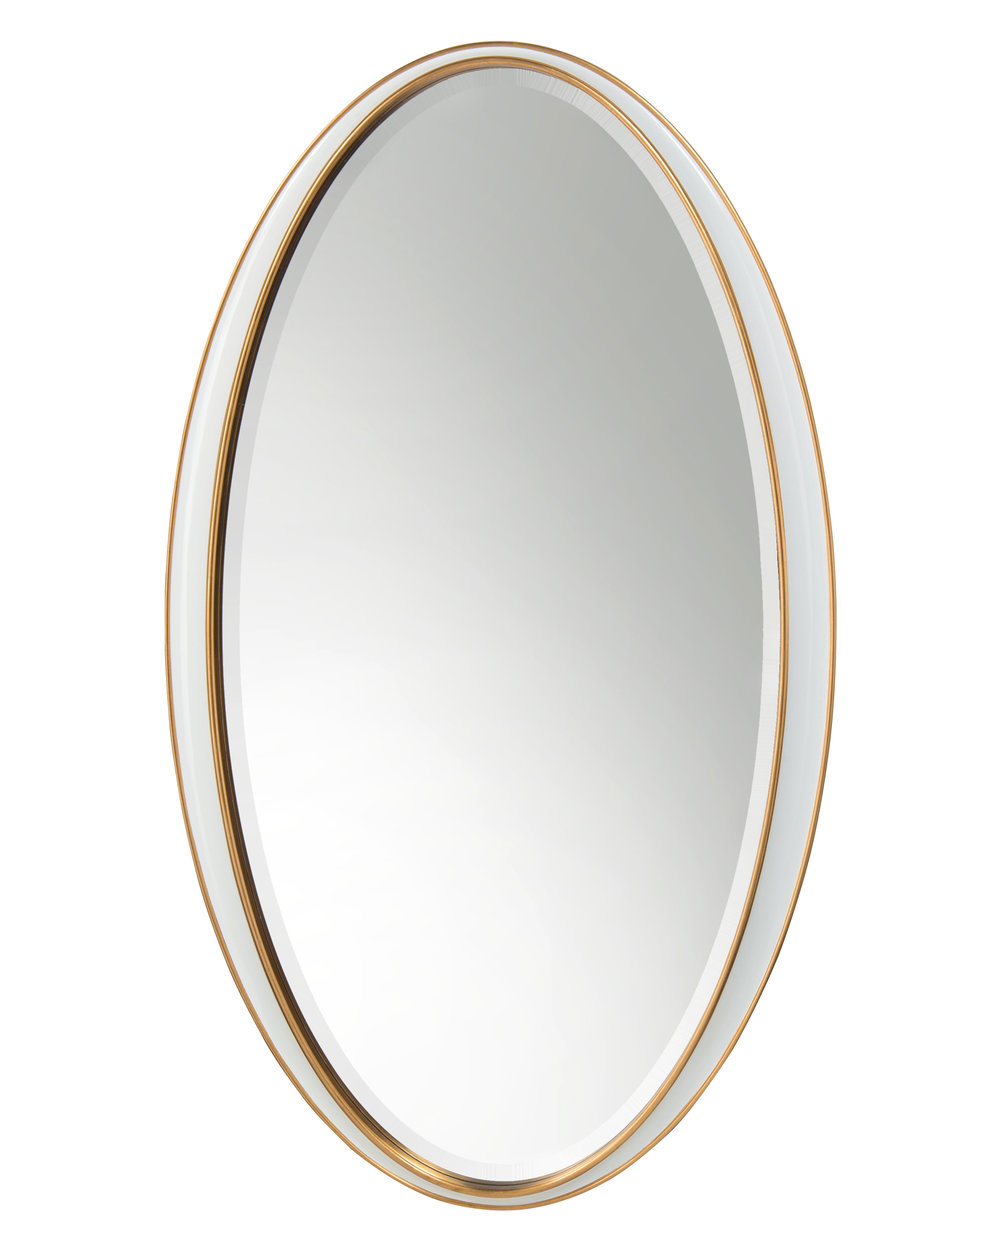 Full Length Oval Mirror